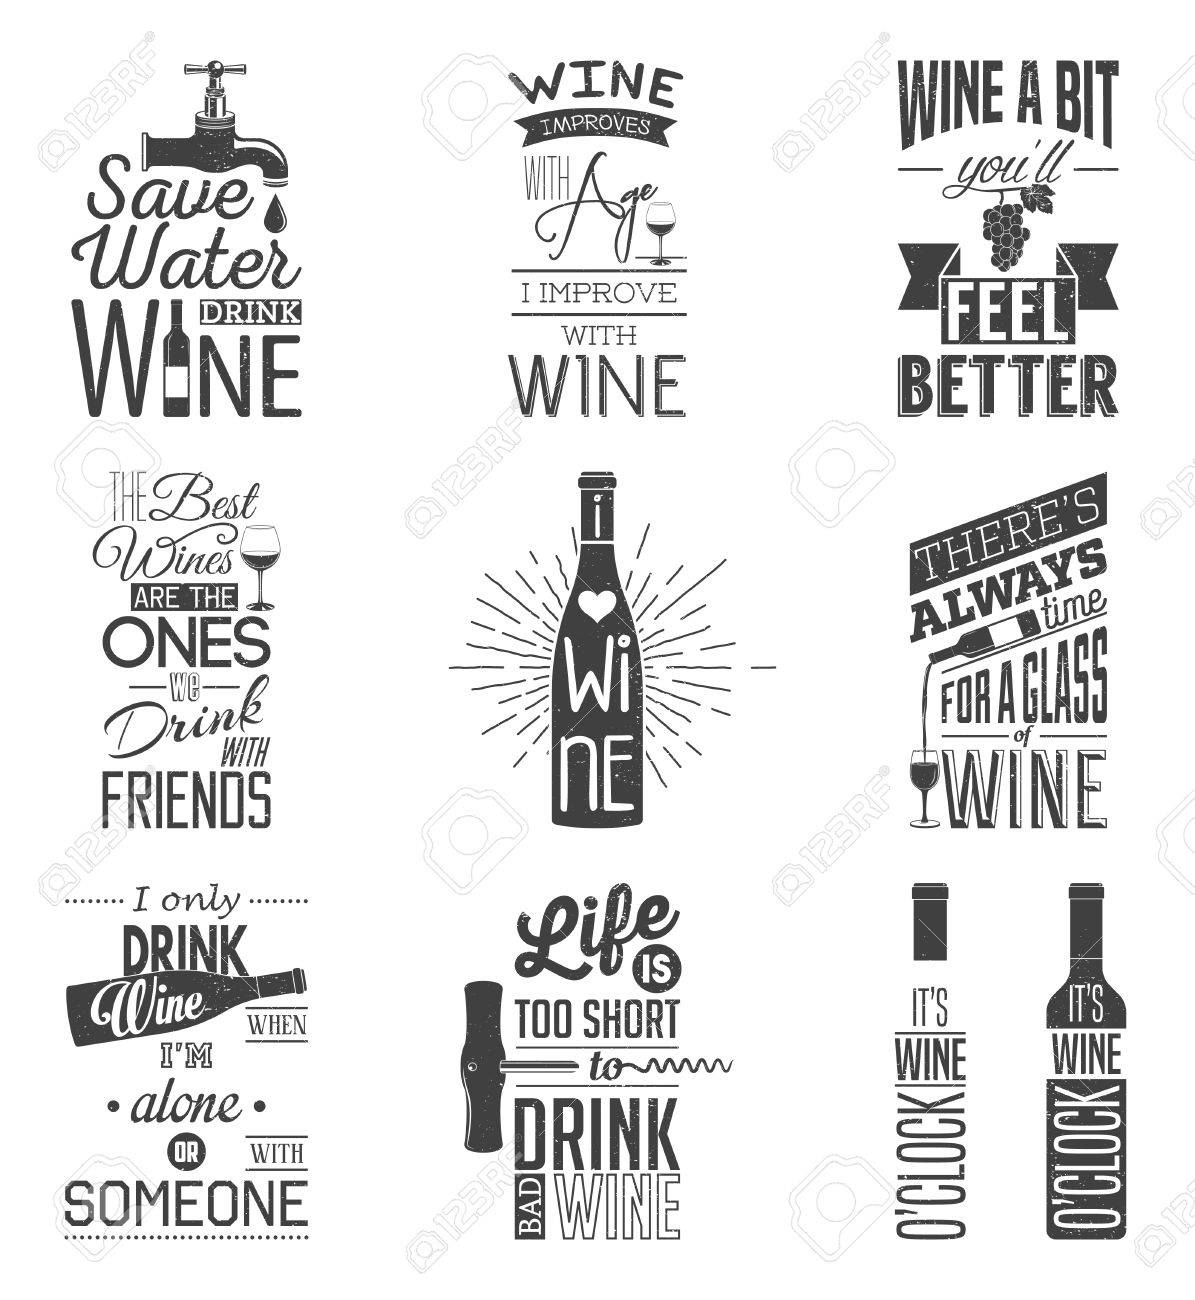 Set of vintage wine typographic quotes. Grunge effect can be edited or removed. - 46862416